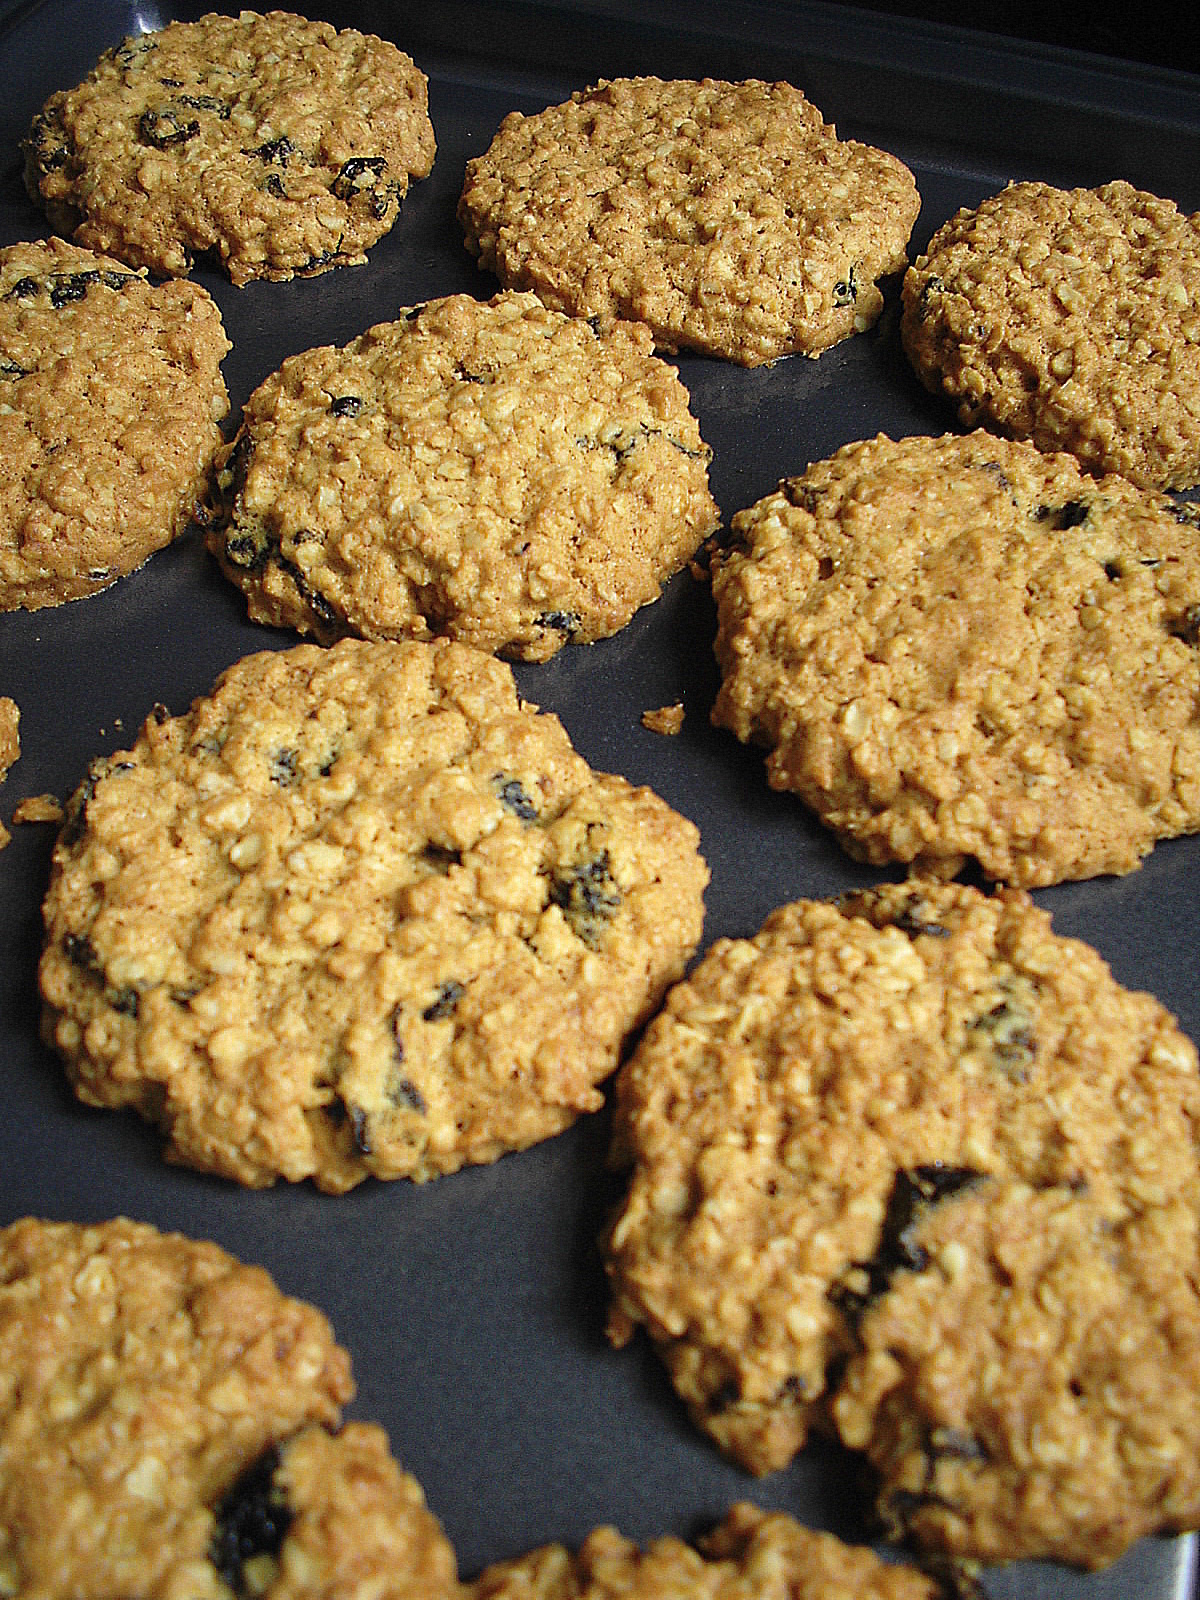 OATMEAL PRUNE COOKIES